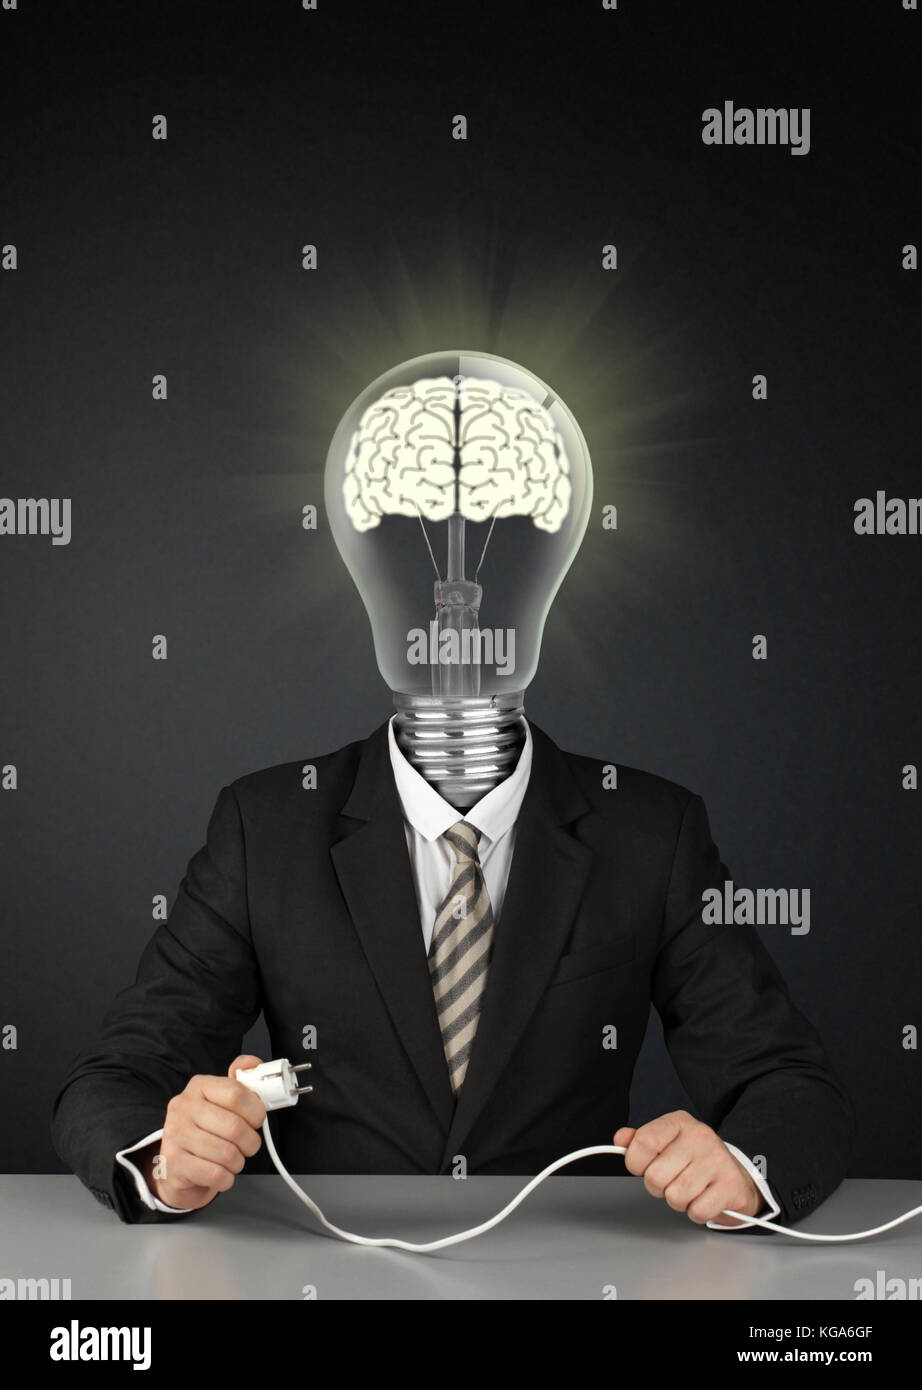 Businessman with light bulb head and plug, switch brain creative concept on black - Stock Image